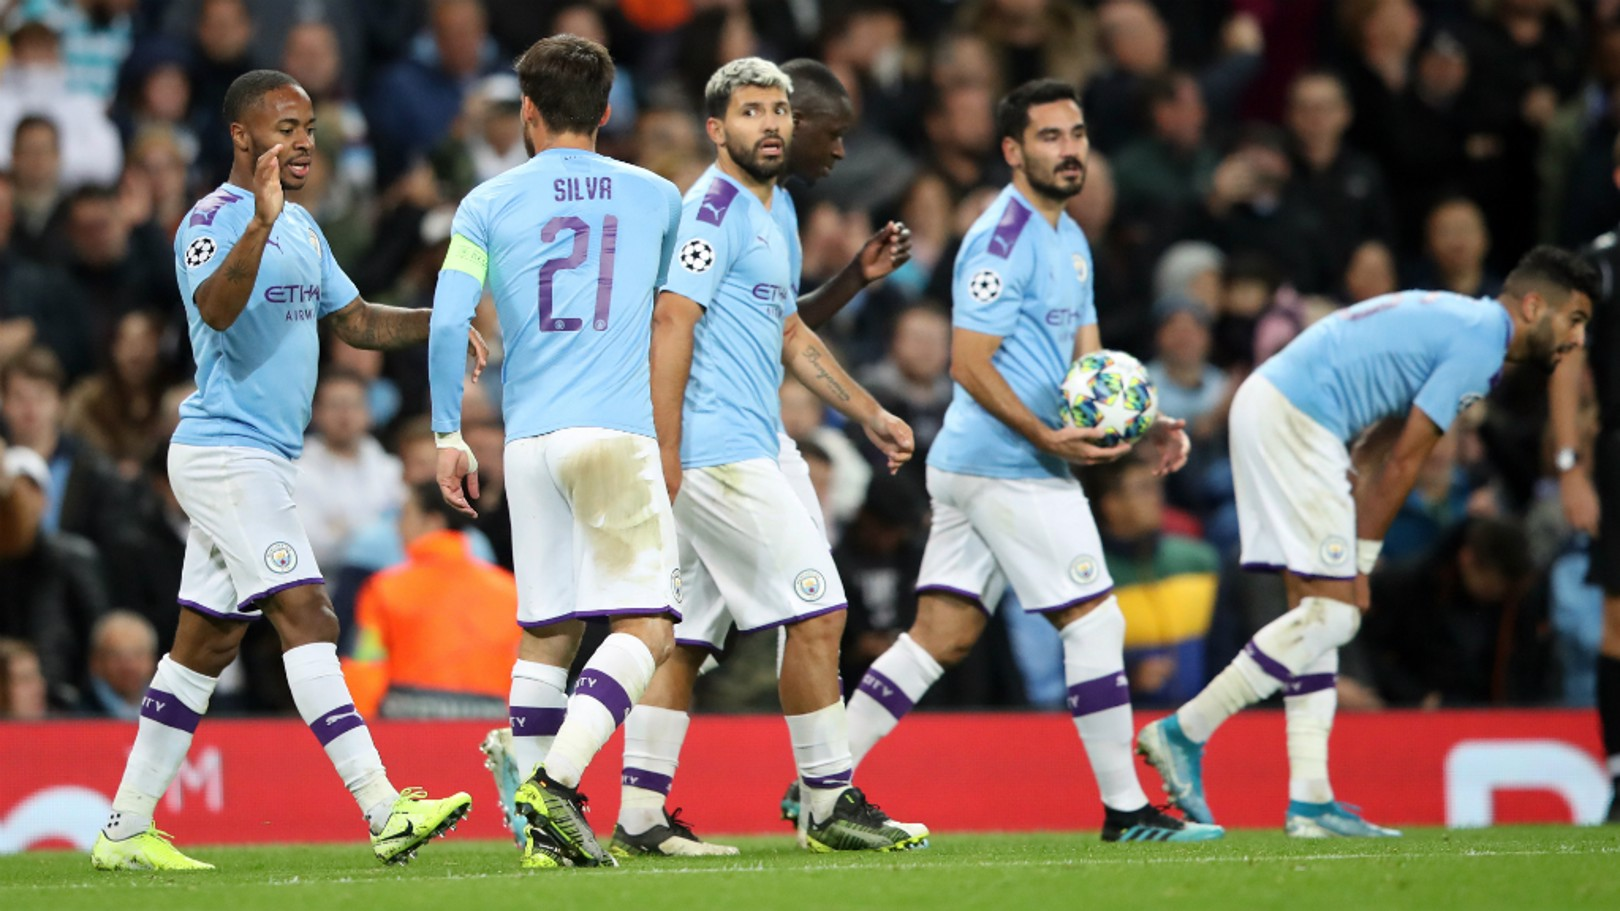 THAT'S A WRAP: City beat Dinamo Zagreb 2-0 with goals from Raheem Sterling and Phil Foden